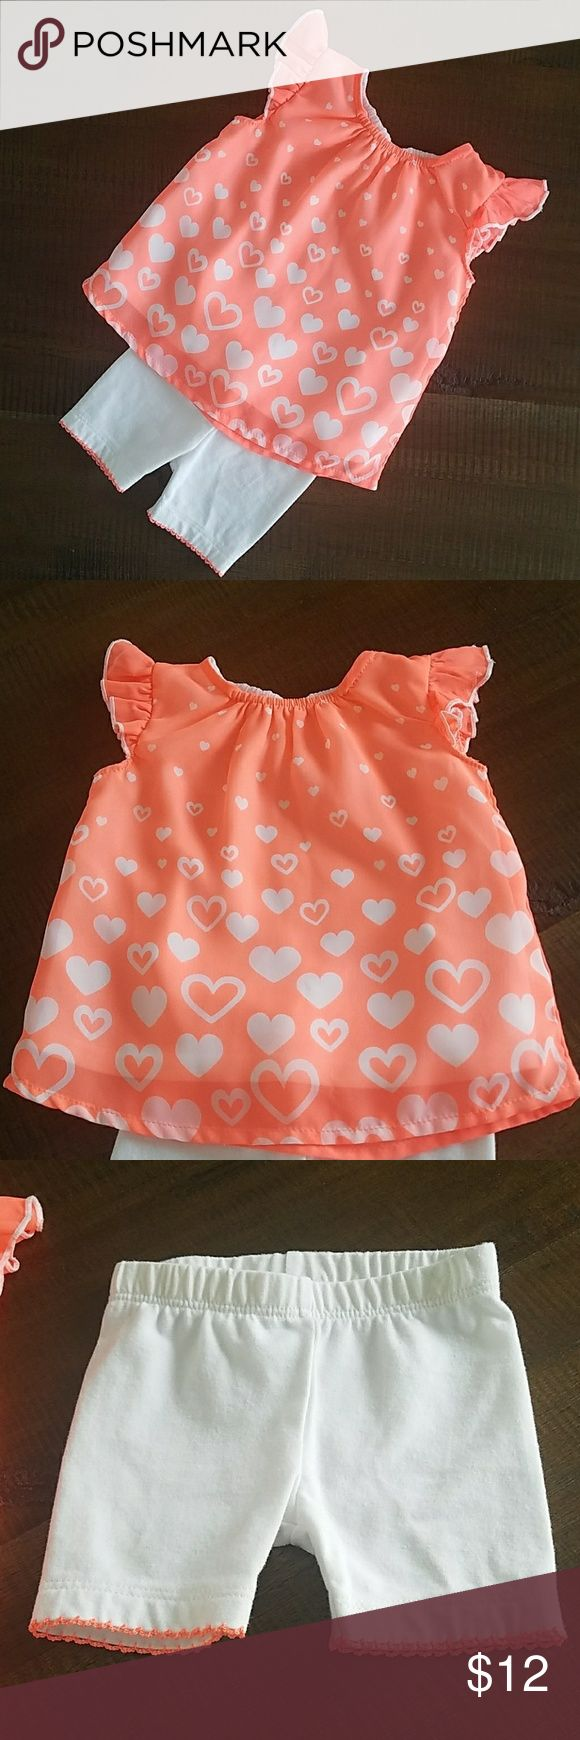 Baby girl outfit Baby girl size 0-3months peach colored outfit. Washed never worn. White spandex shorts with peach trim and a sweet baby doll orange heart top. Coming from a smoke free pet free closet.  💲BUNDLE AND SAVE Matching Sets